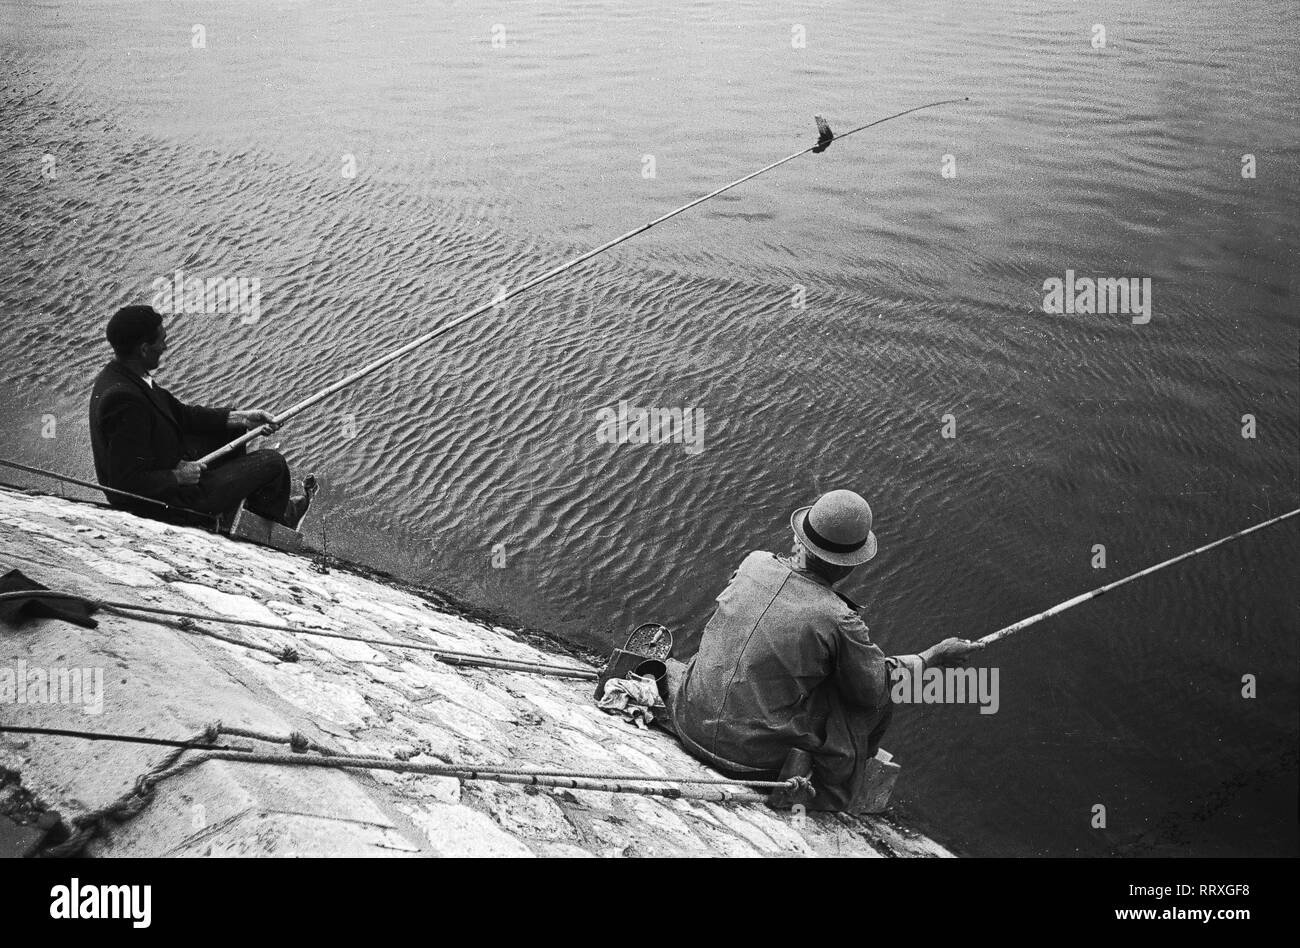 Travel to France - France, Paris - Angler on the Seine riverside. Image date circa 1950. Photo Erich Andres - Stock Image